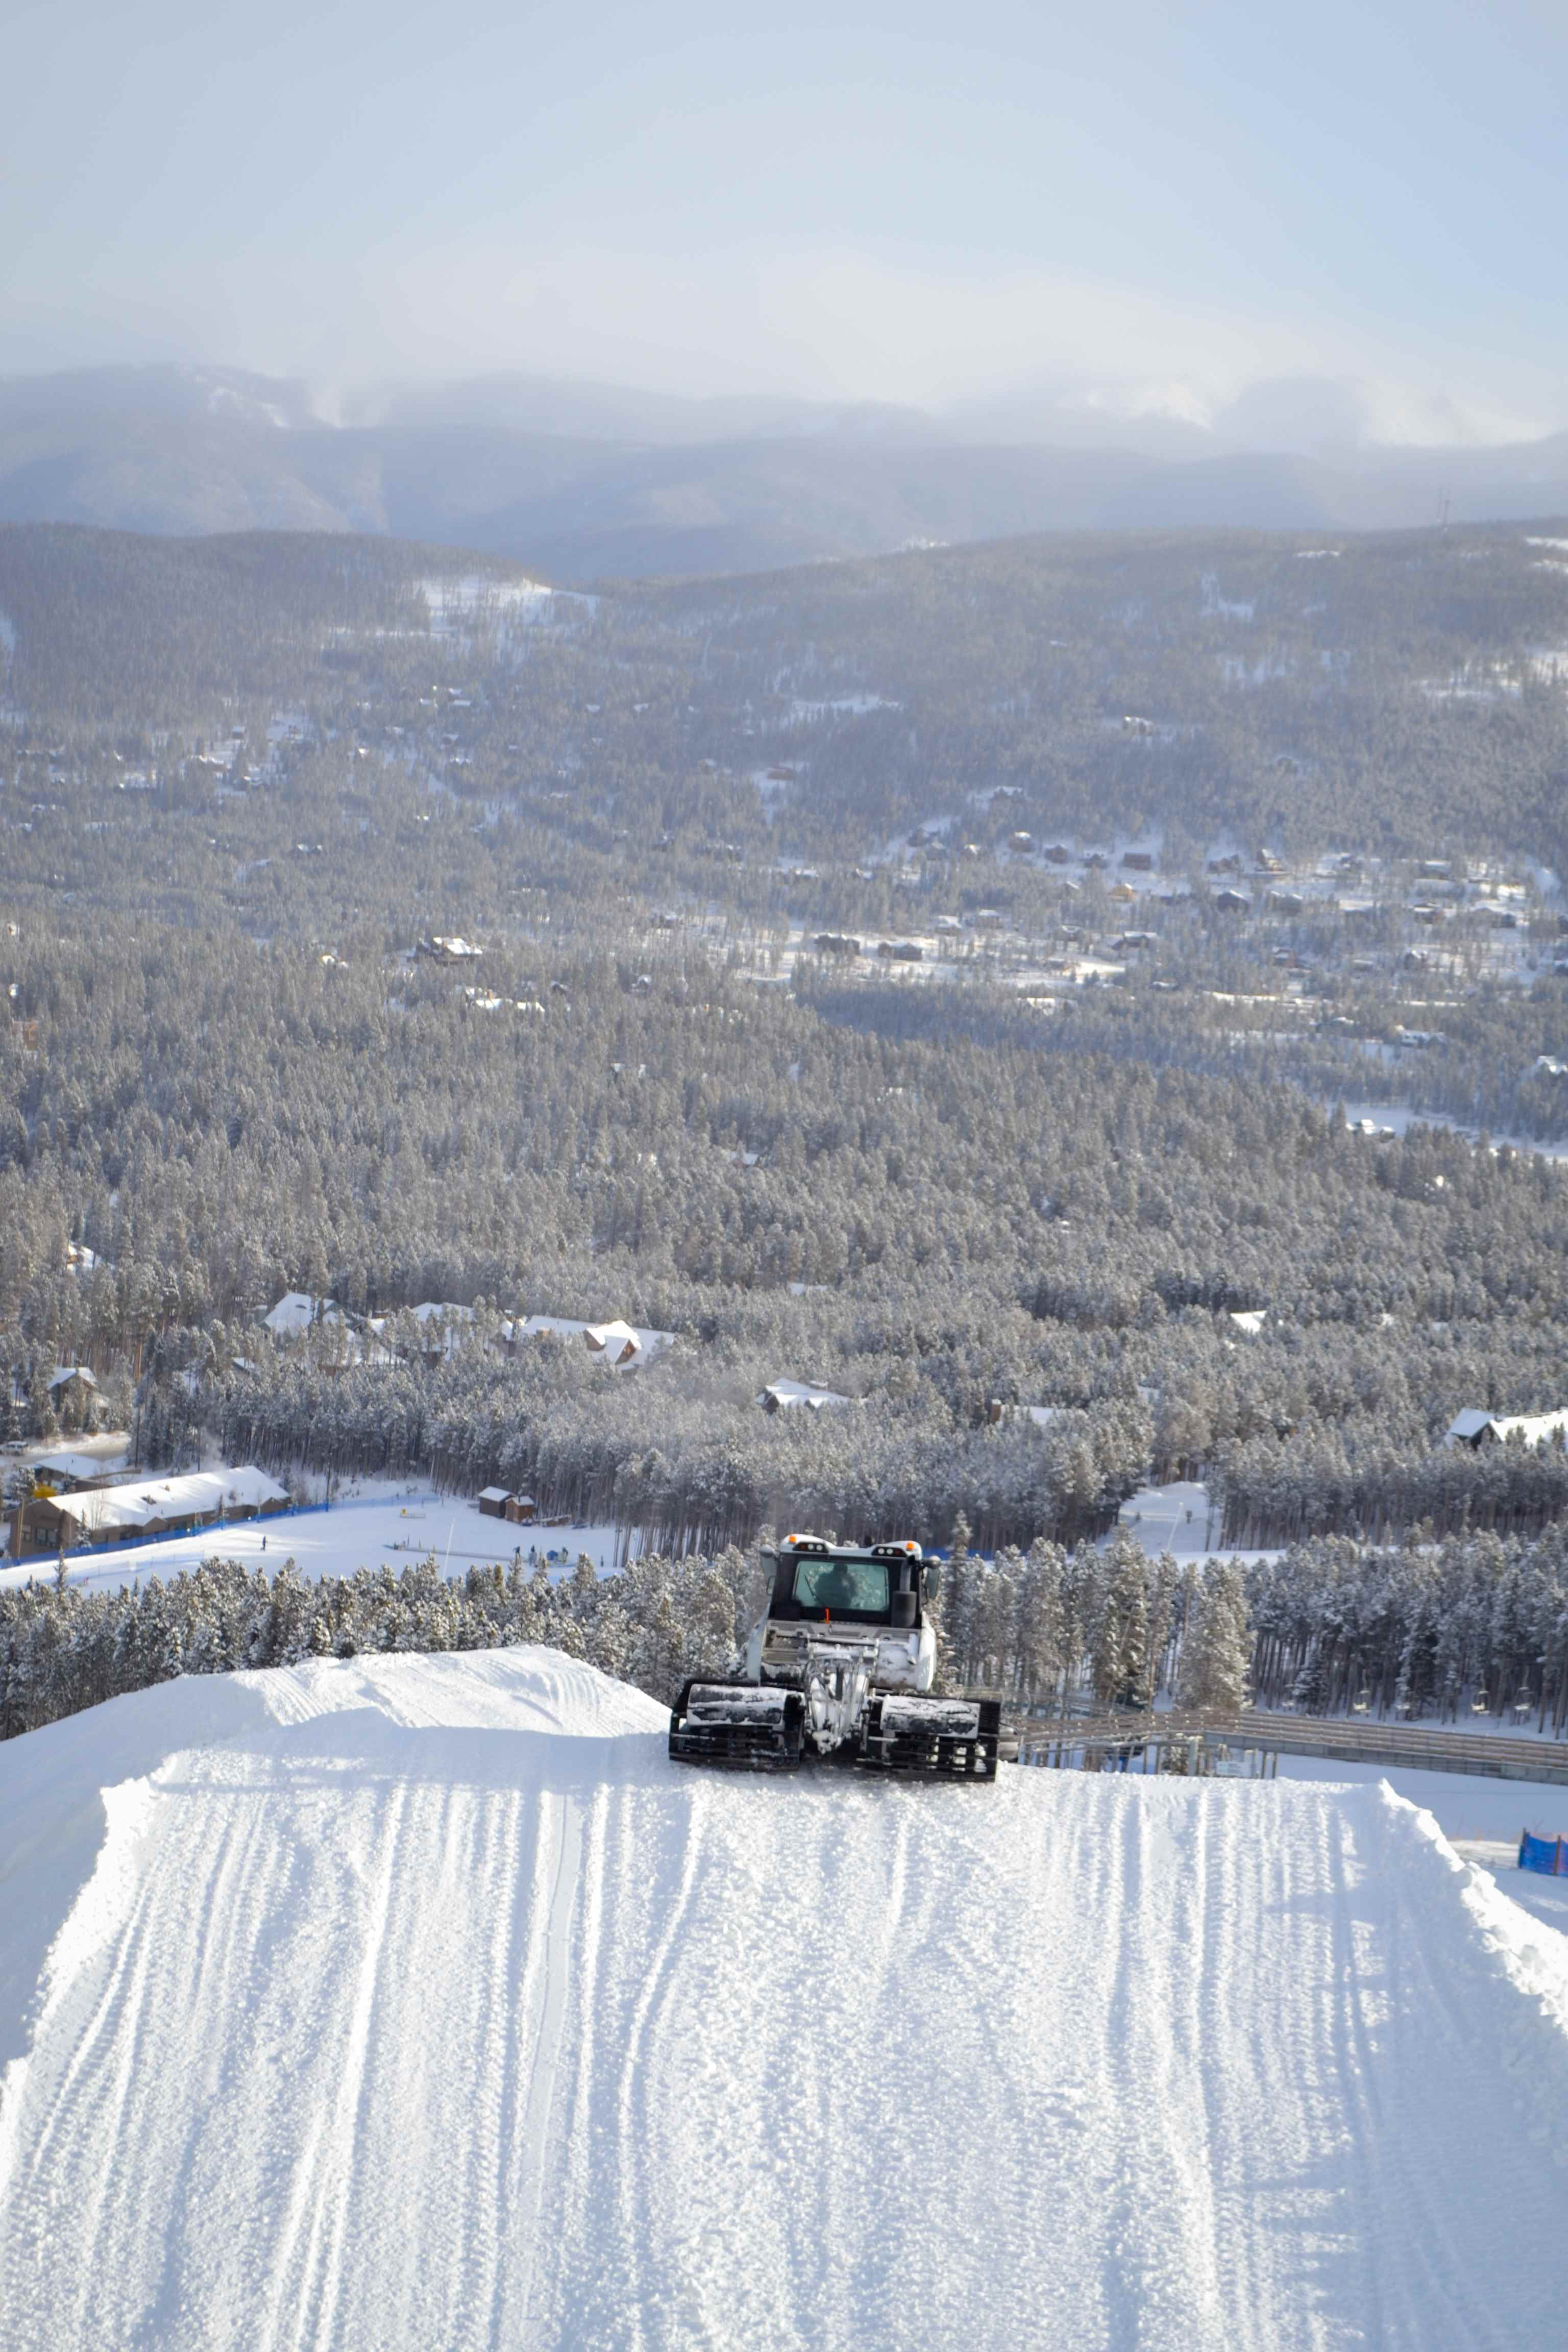 Snow cat working on the Dew Tour jumps